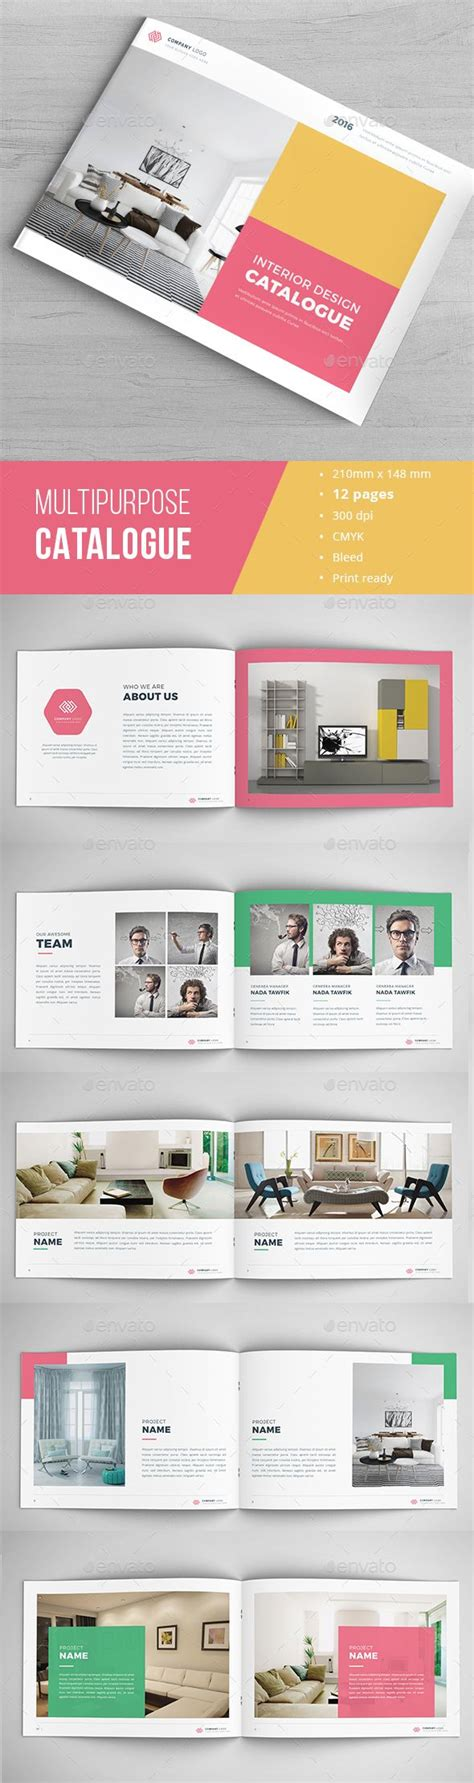 best 25 product catalog design ideas on pinterest